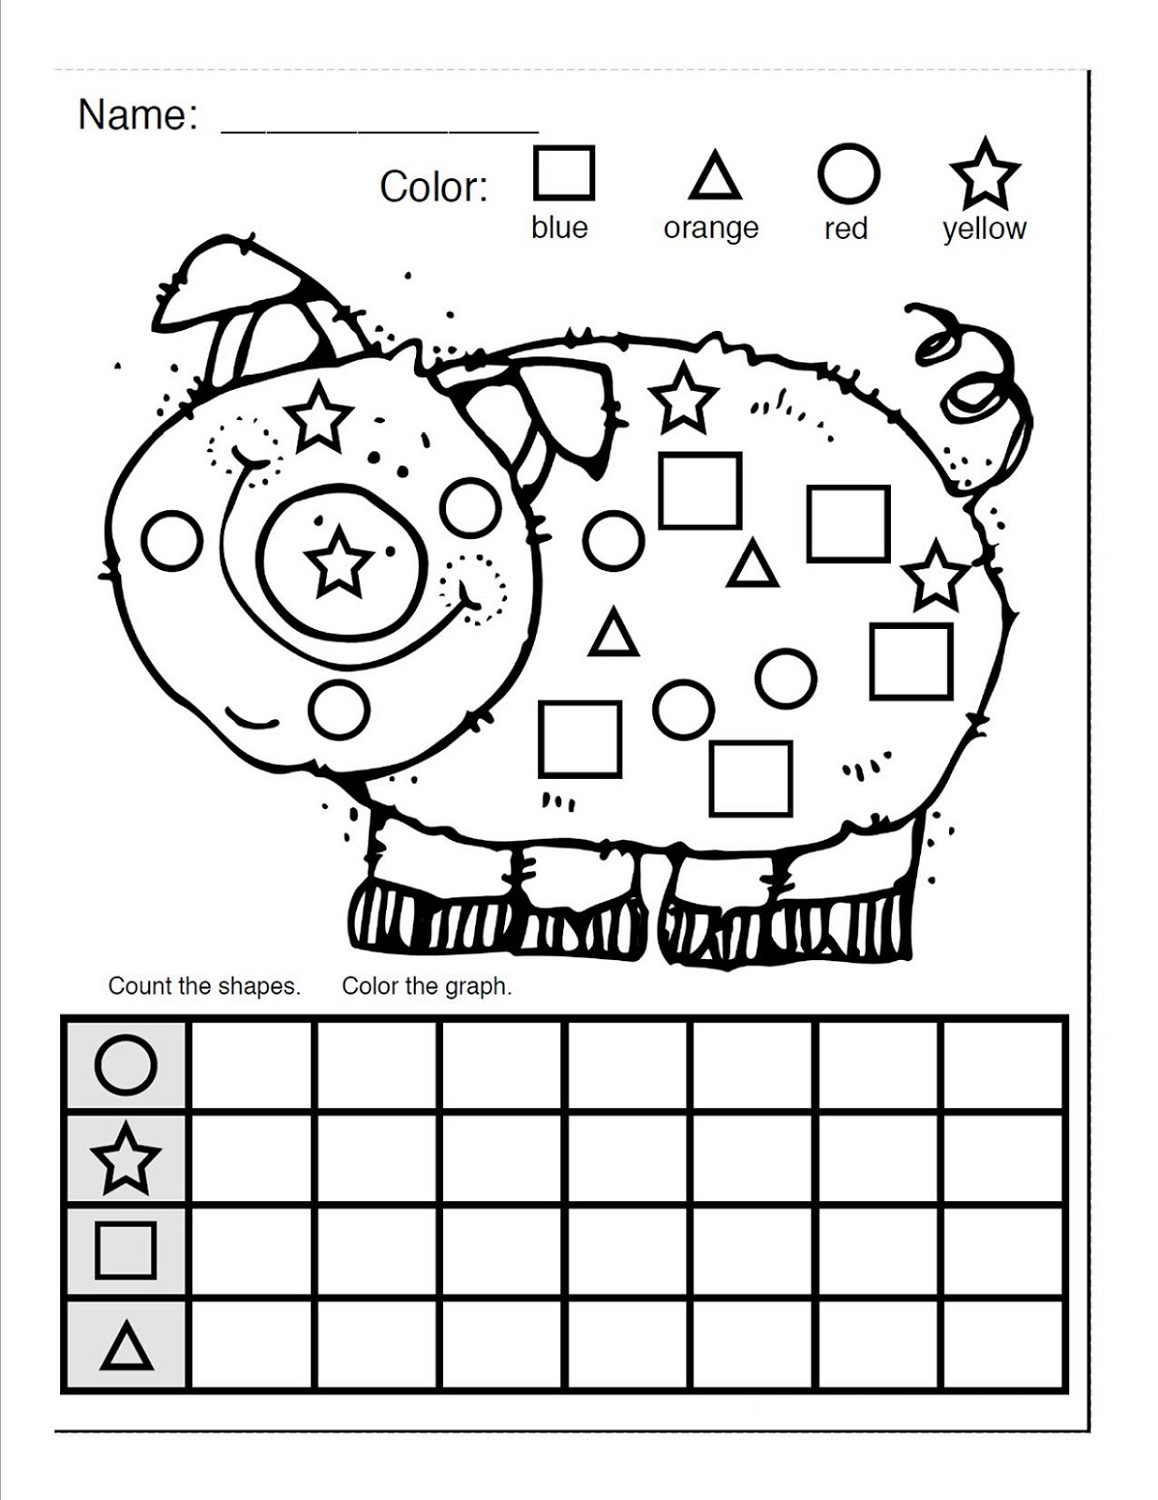 Preschool Worksheet About Pigs